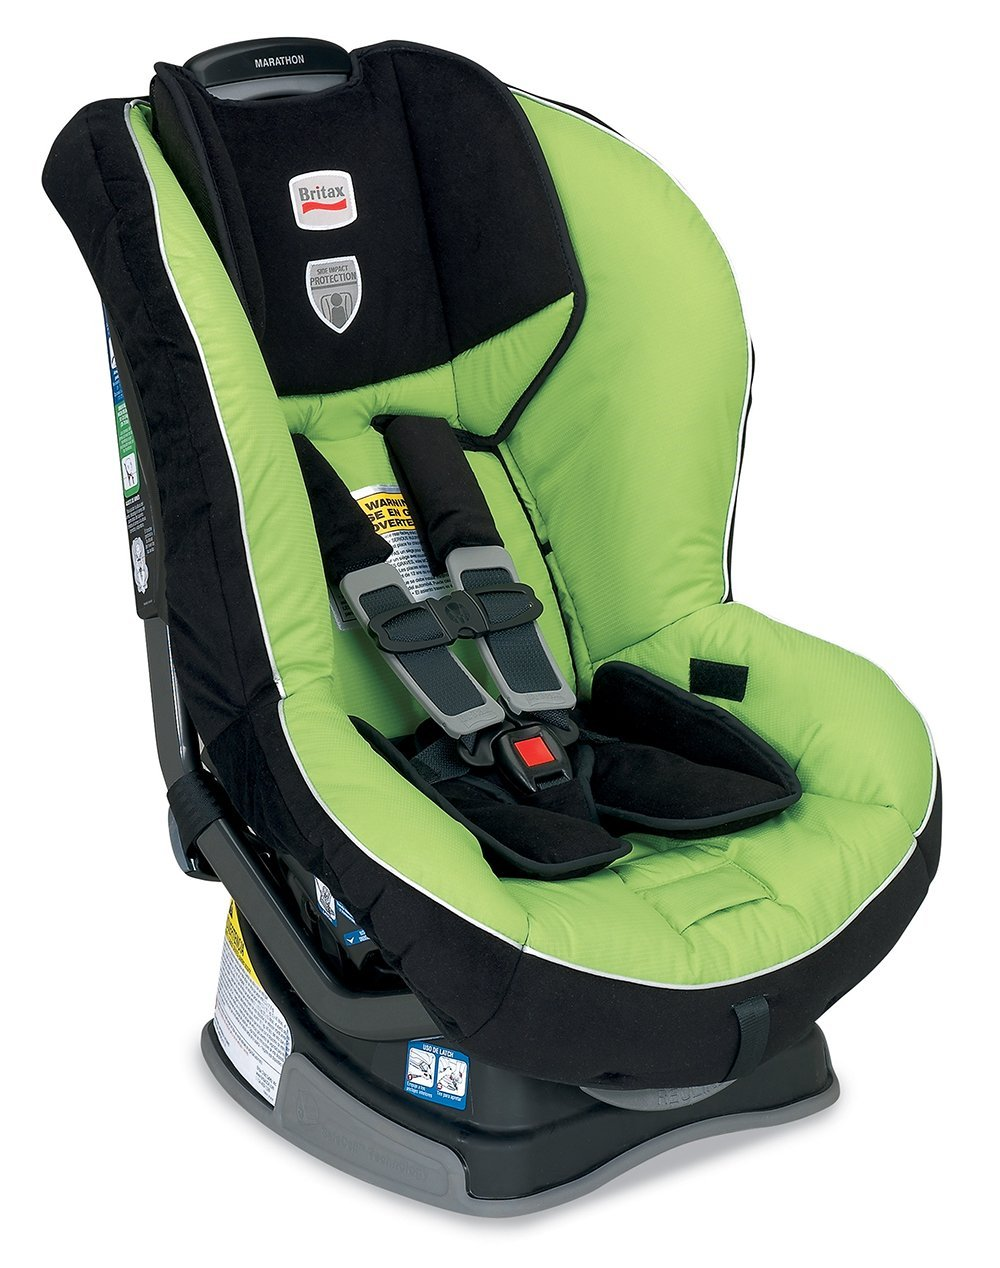 Graco Lime Green Car Seat - Best Seat 2018